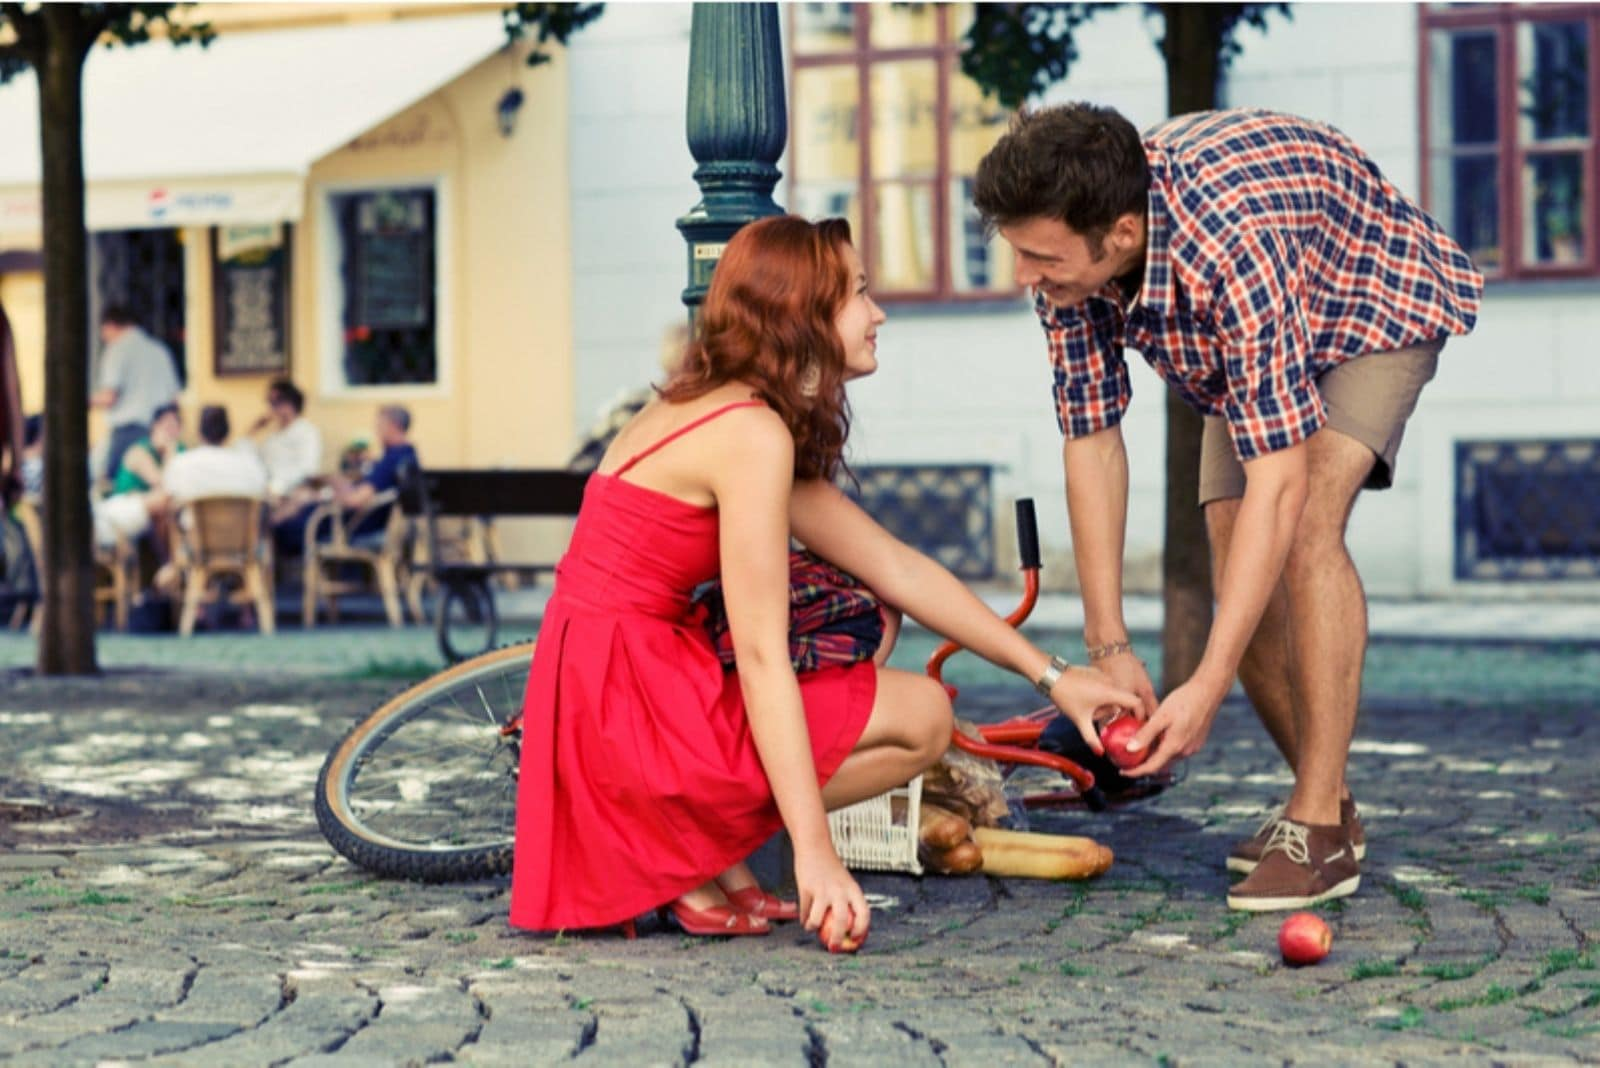 man helping a woman get the fruit fell out from the bicycles basket